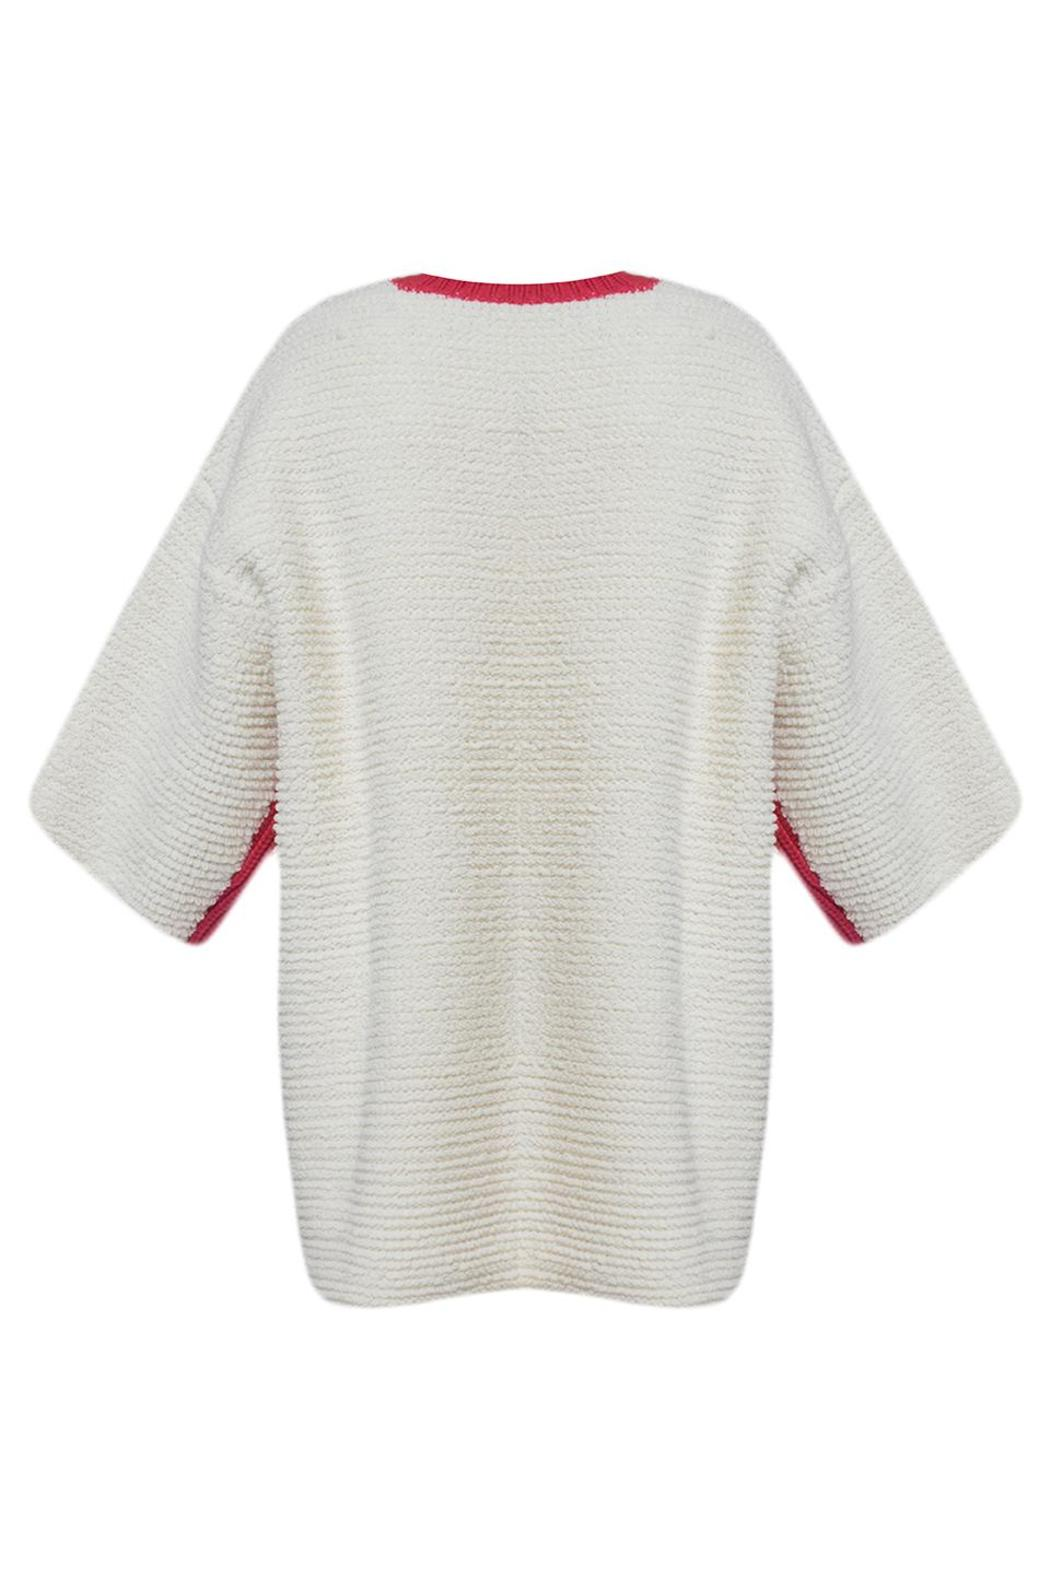 J JS Lee Rugback Chunky Sweater - Front Full Image